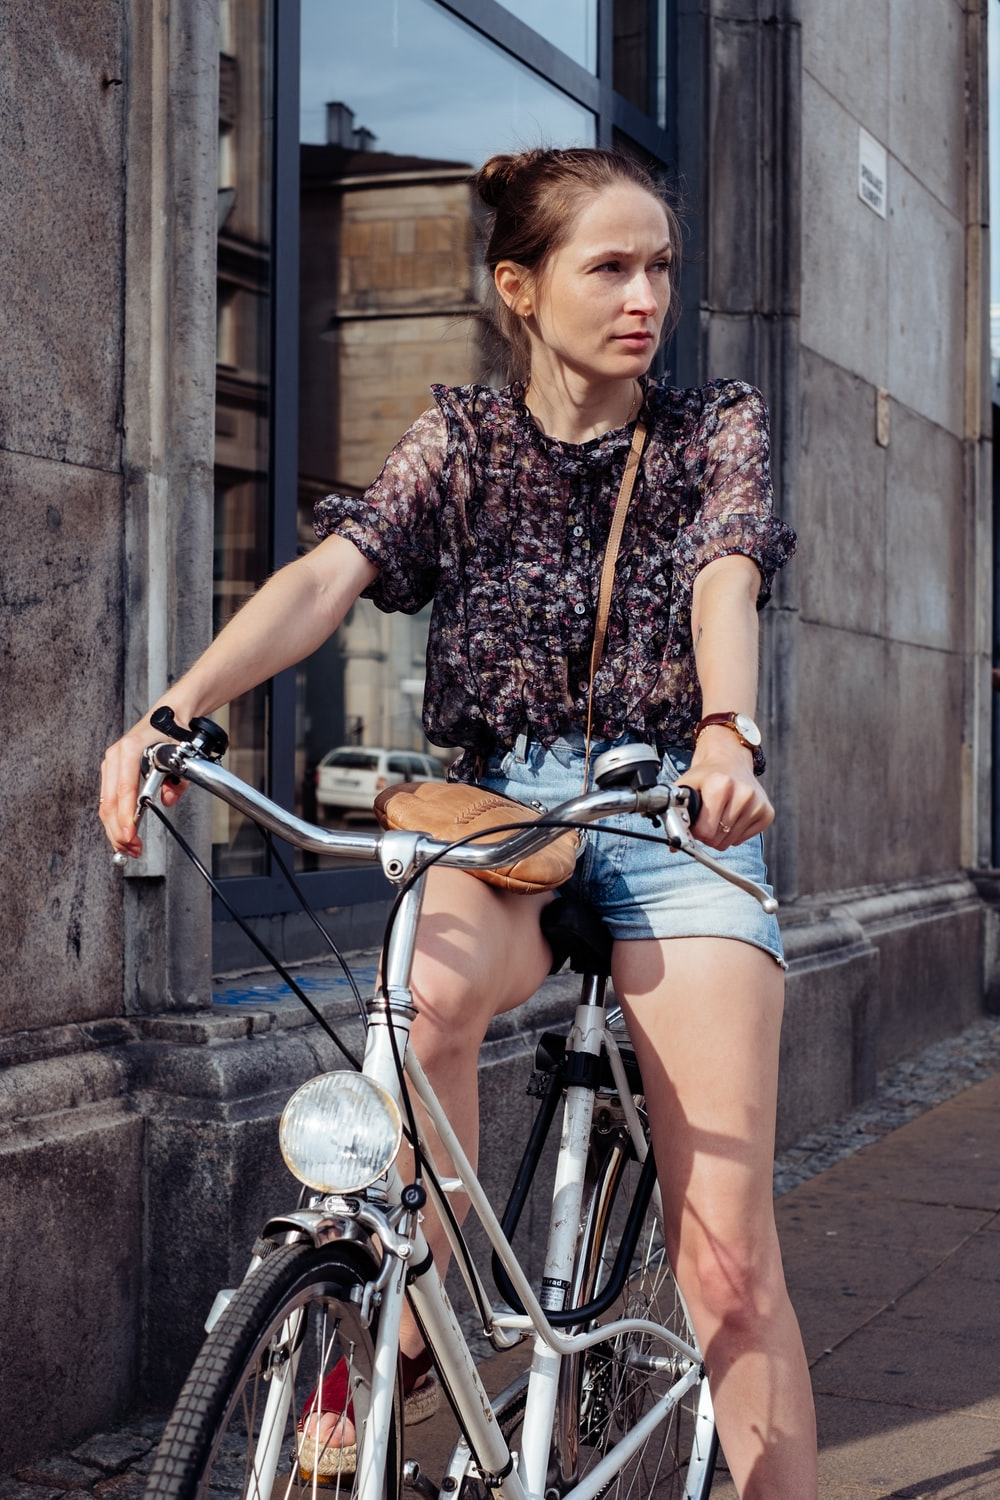 woman in black and white floral shirt and blue denim shorts riding on bicycle